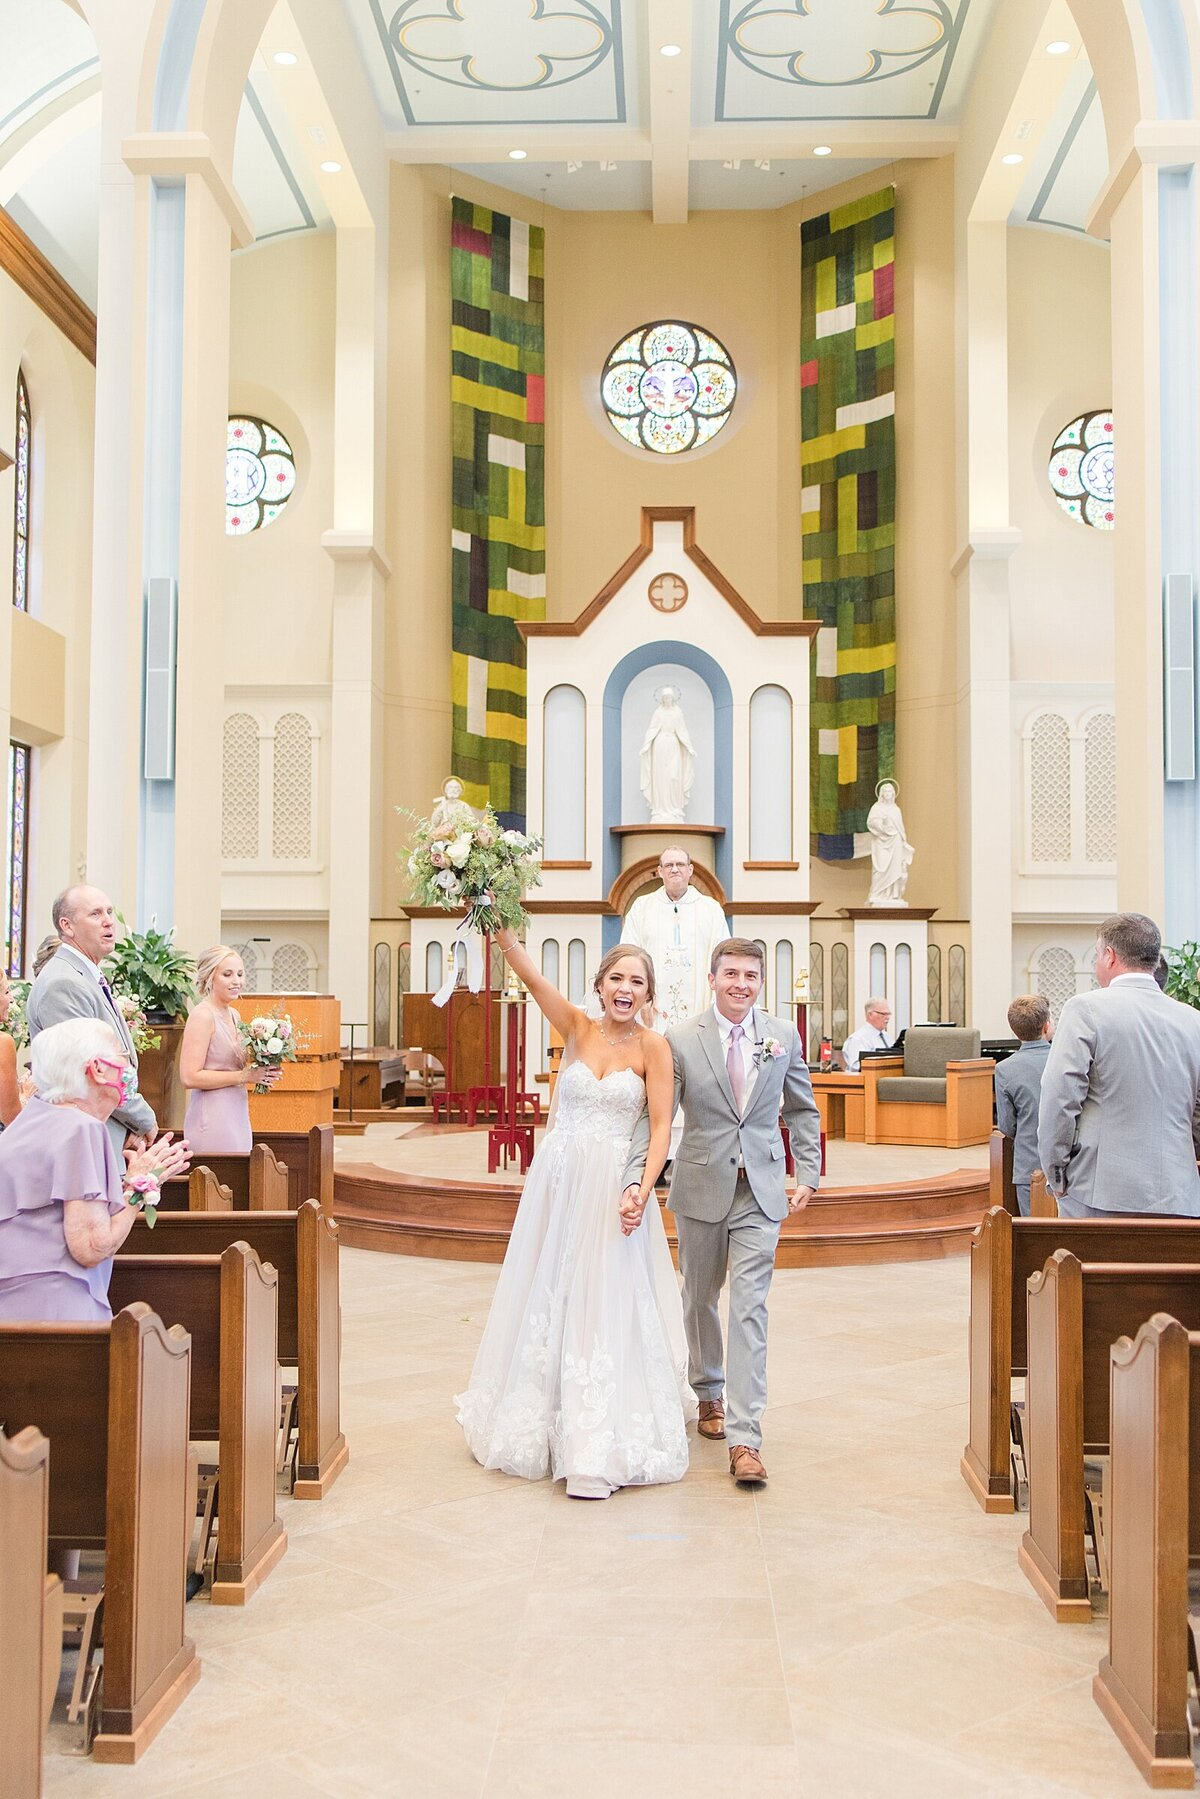 Kara Webster Photography | Meredith & Tyler | University Of Dayton Marriott Wedding Photographer_0037